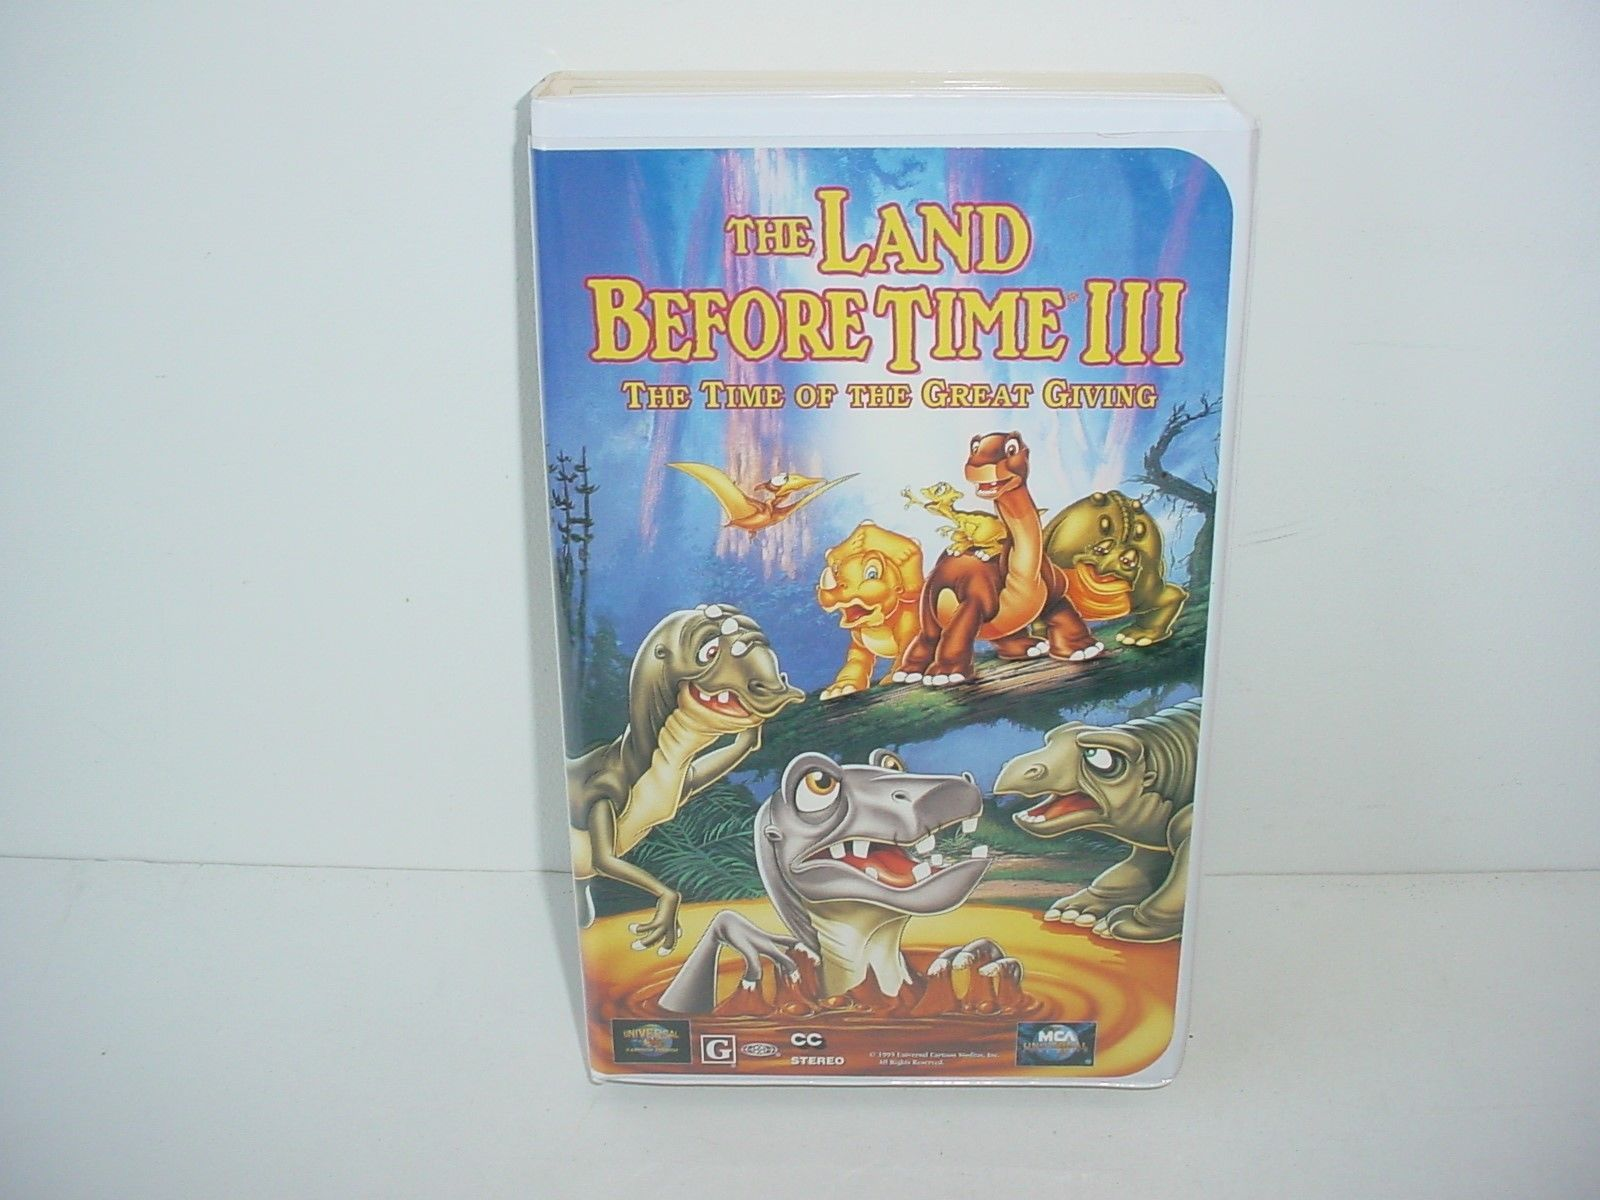 Primary image for The Land Before Time III: The Time of Great Giving VHS Video Tape Movie